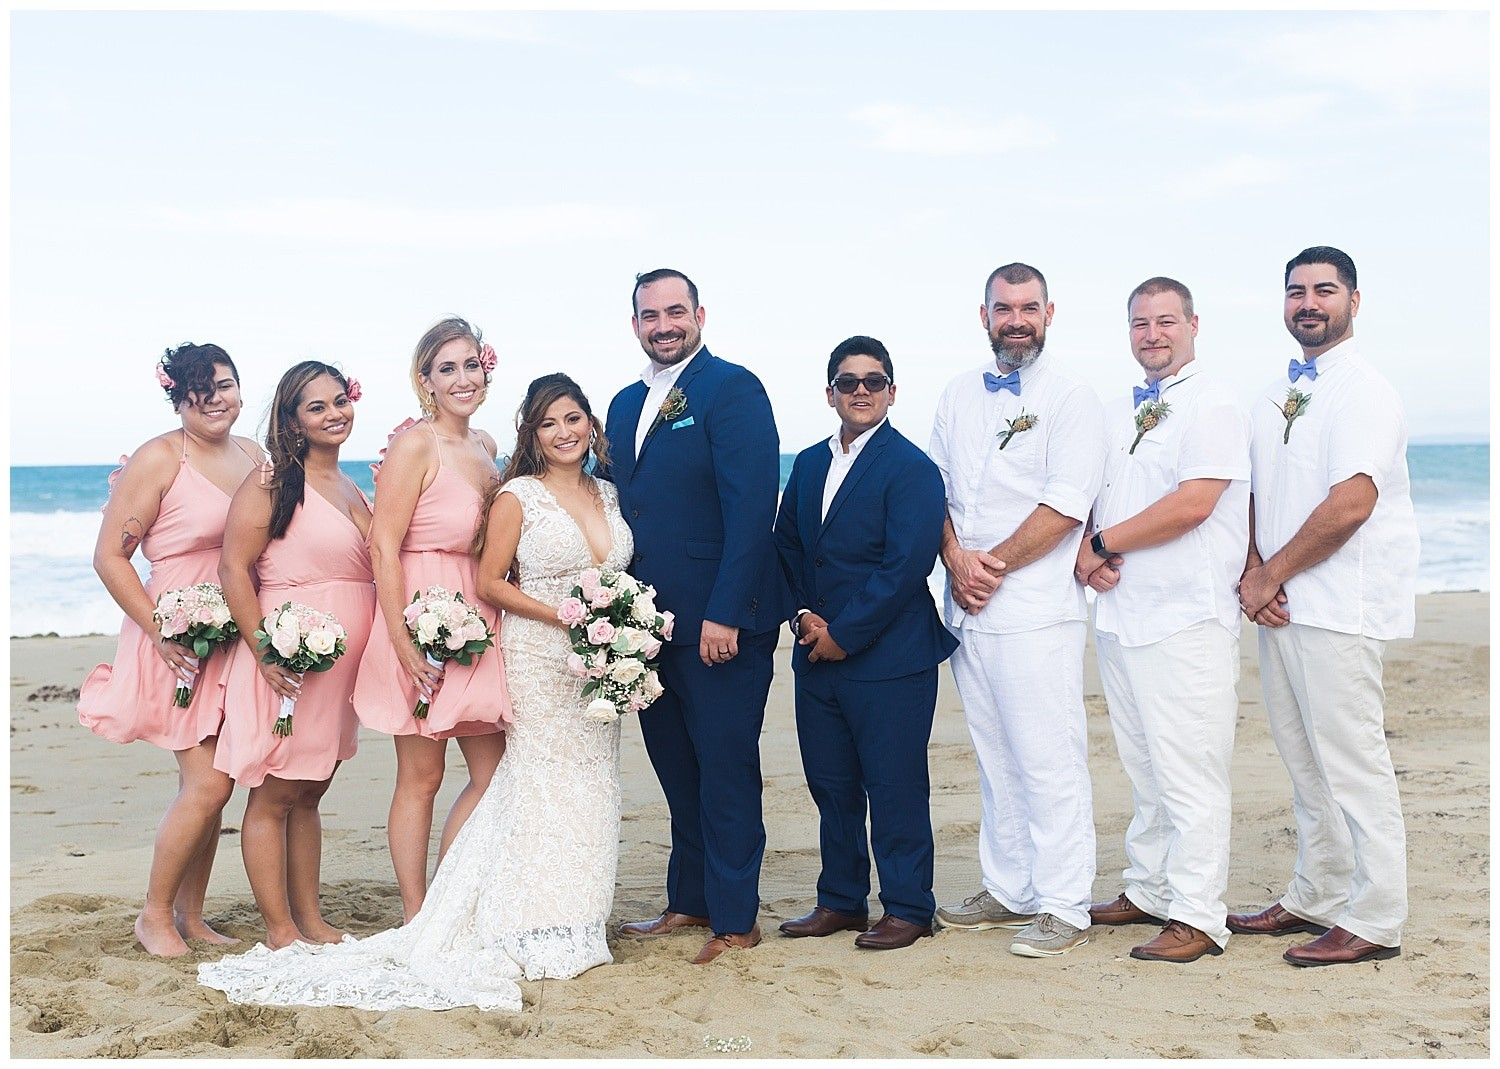 wedding party portraits at Villa Cocomar in the Dominican Republic by Swish and Click Photographer